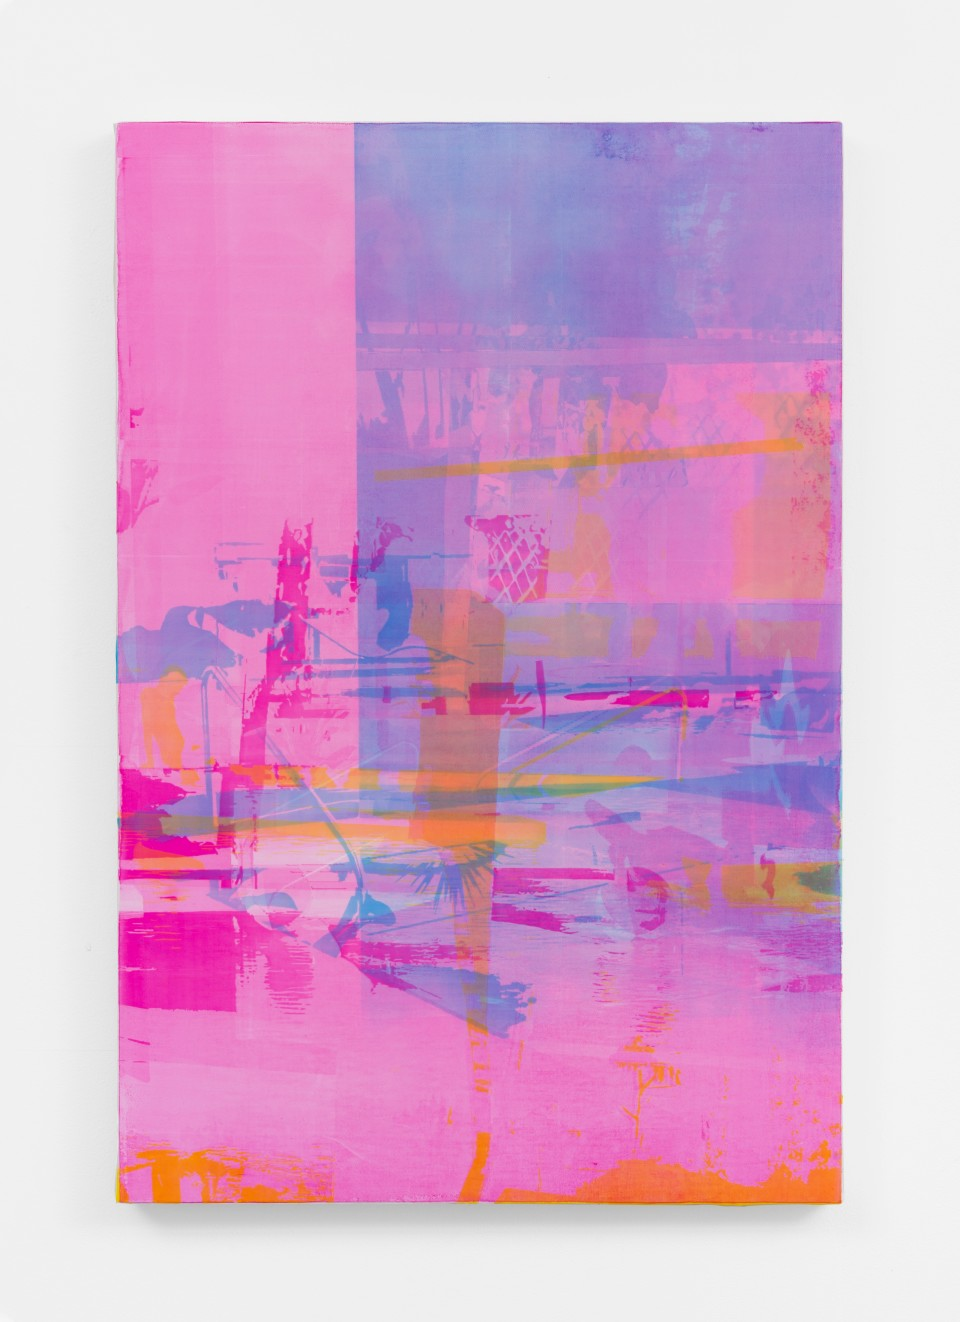 Image: Zoe Walsh  Where focus fails to mesh, 2020  signed and dated verso  acrylic on canvas-wrapped panel  30 x 20 inches (76.2 x 50.8 cm)